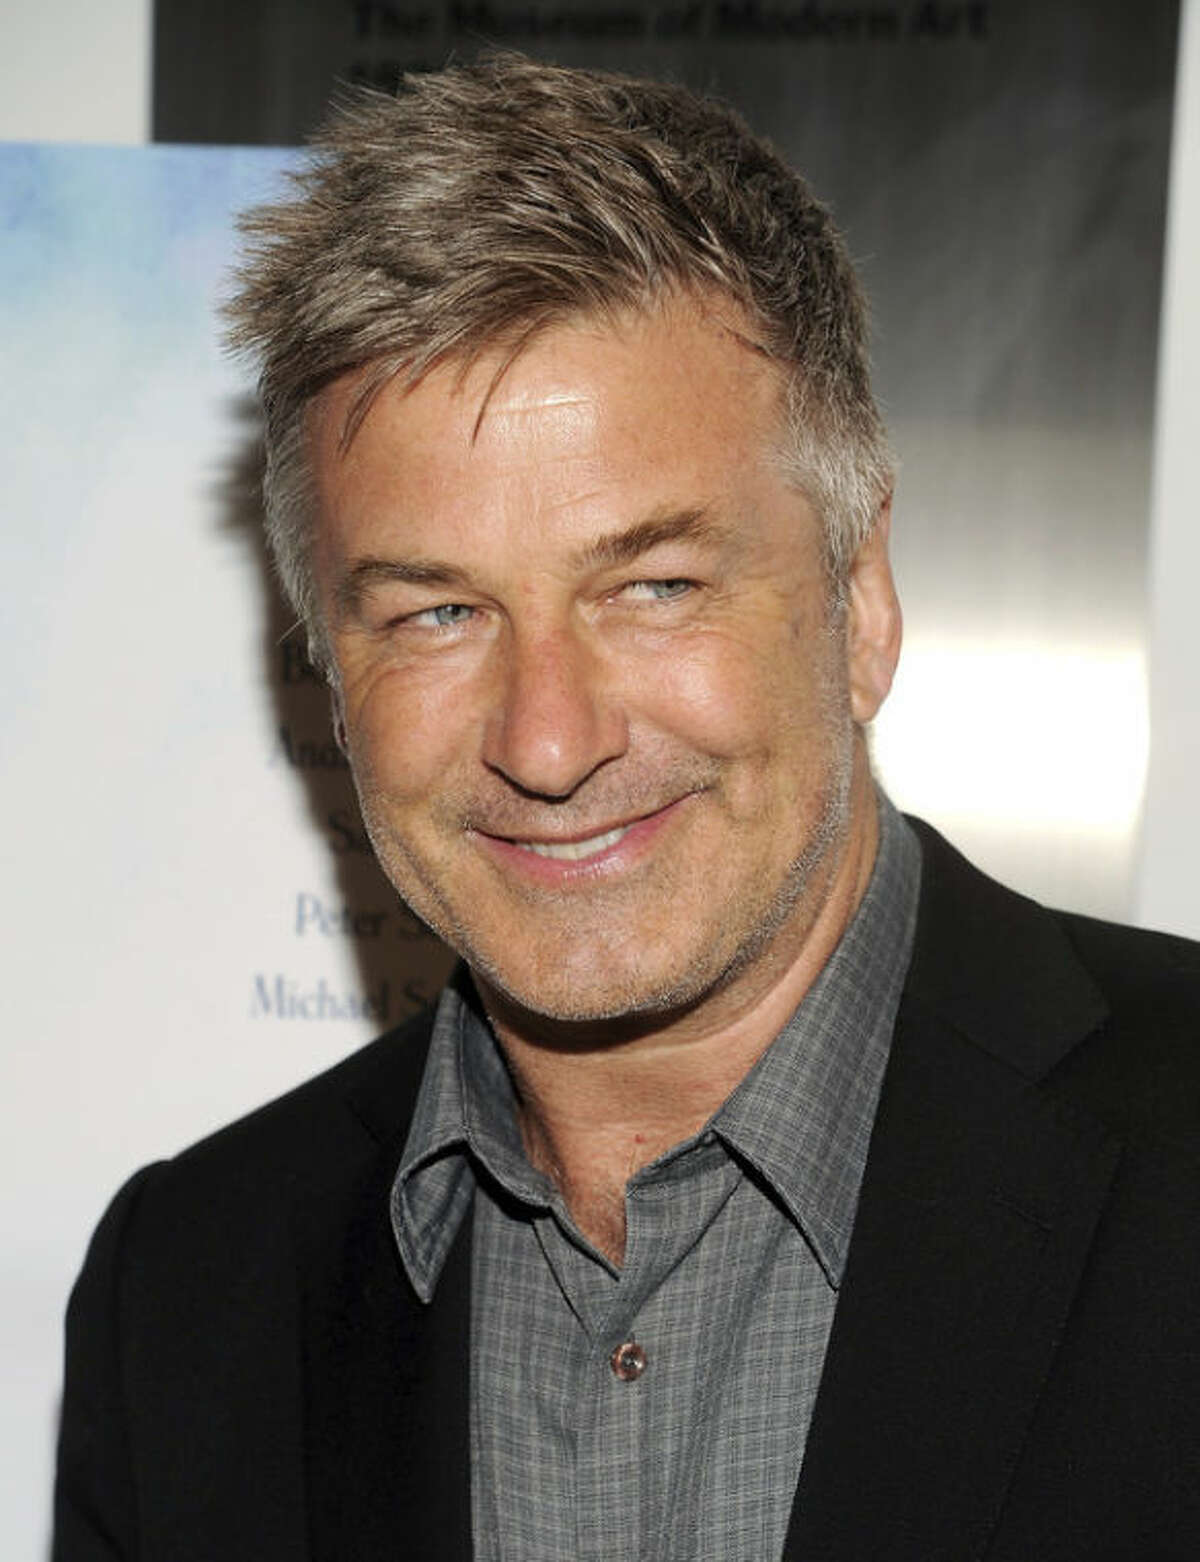 FILE - This July 22, 2013 file photo shows actor Alec Baldwin at the premiere of